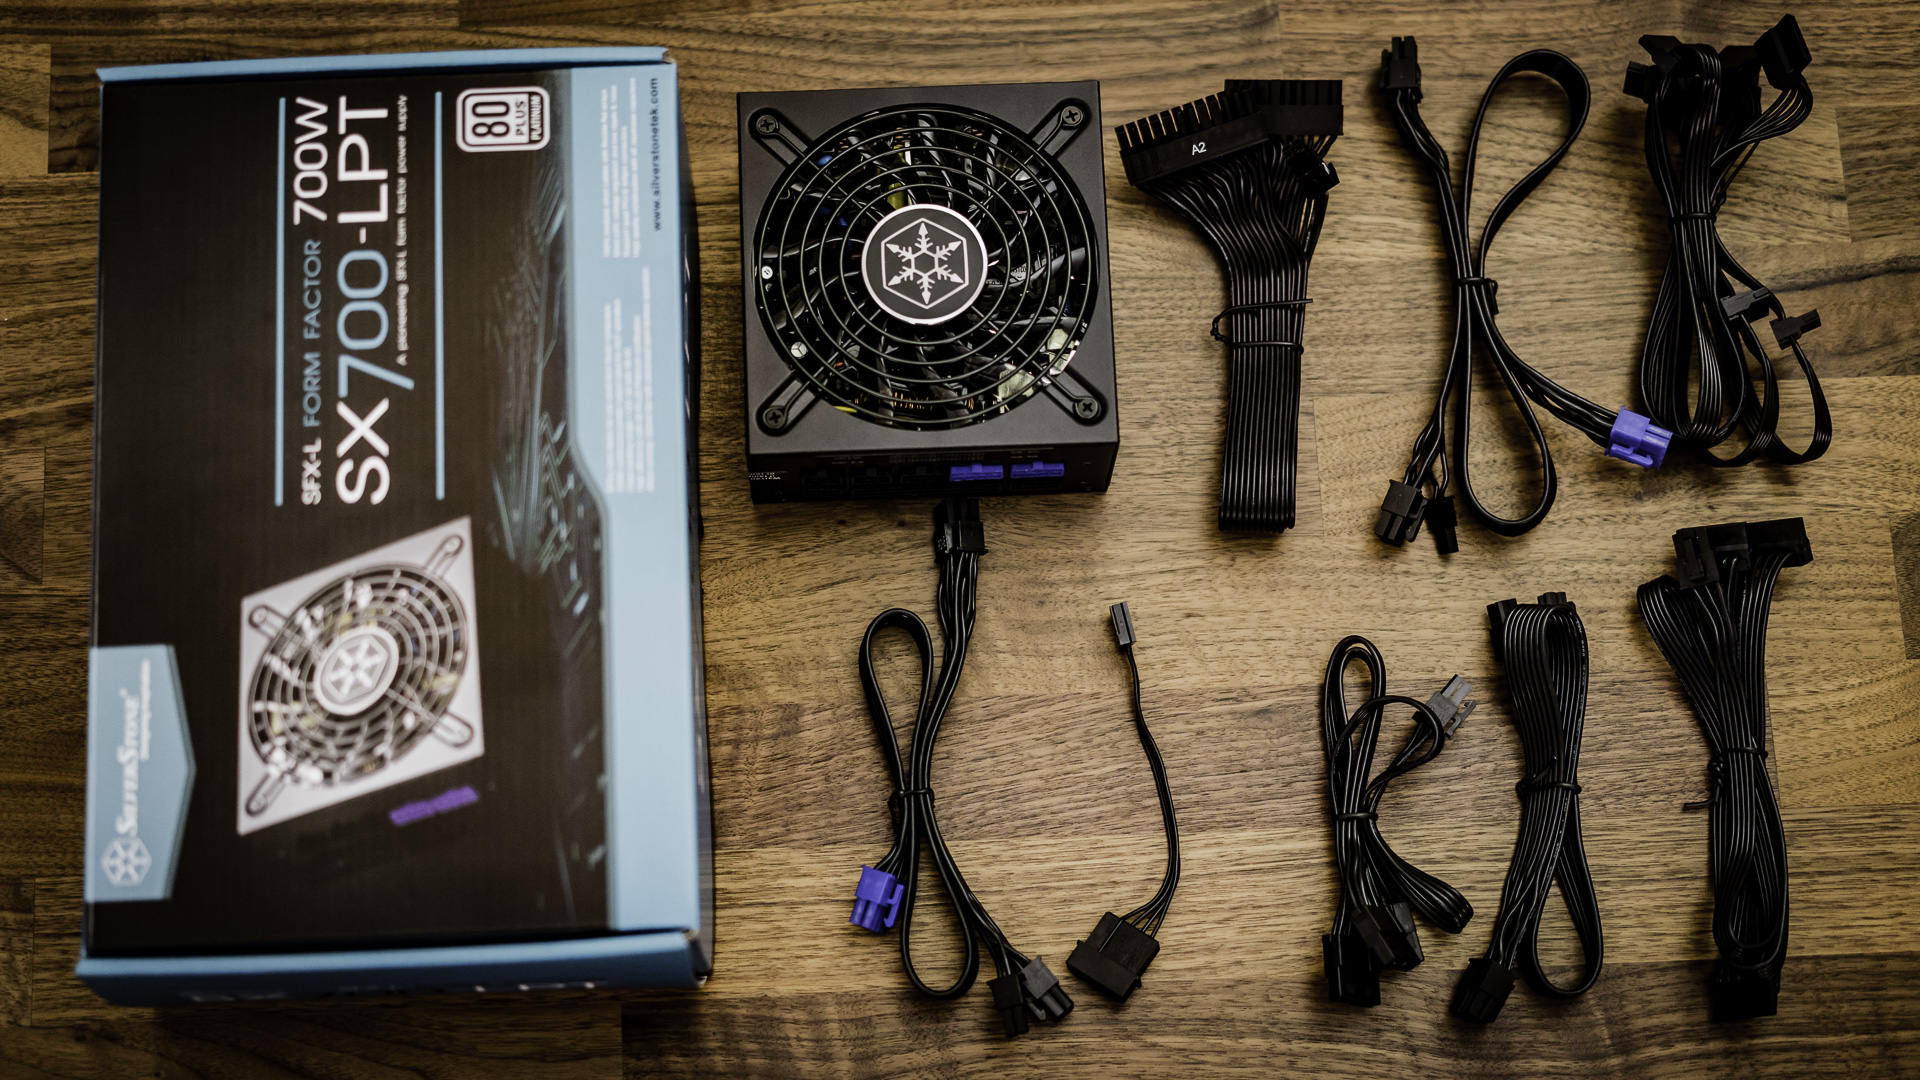 silverstone-sx700-lpt-power-supply-review-5